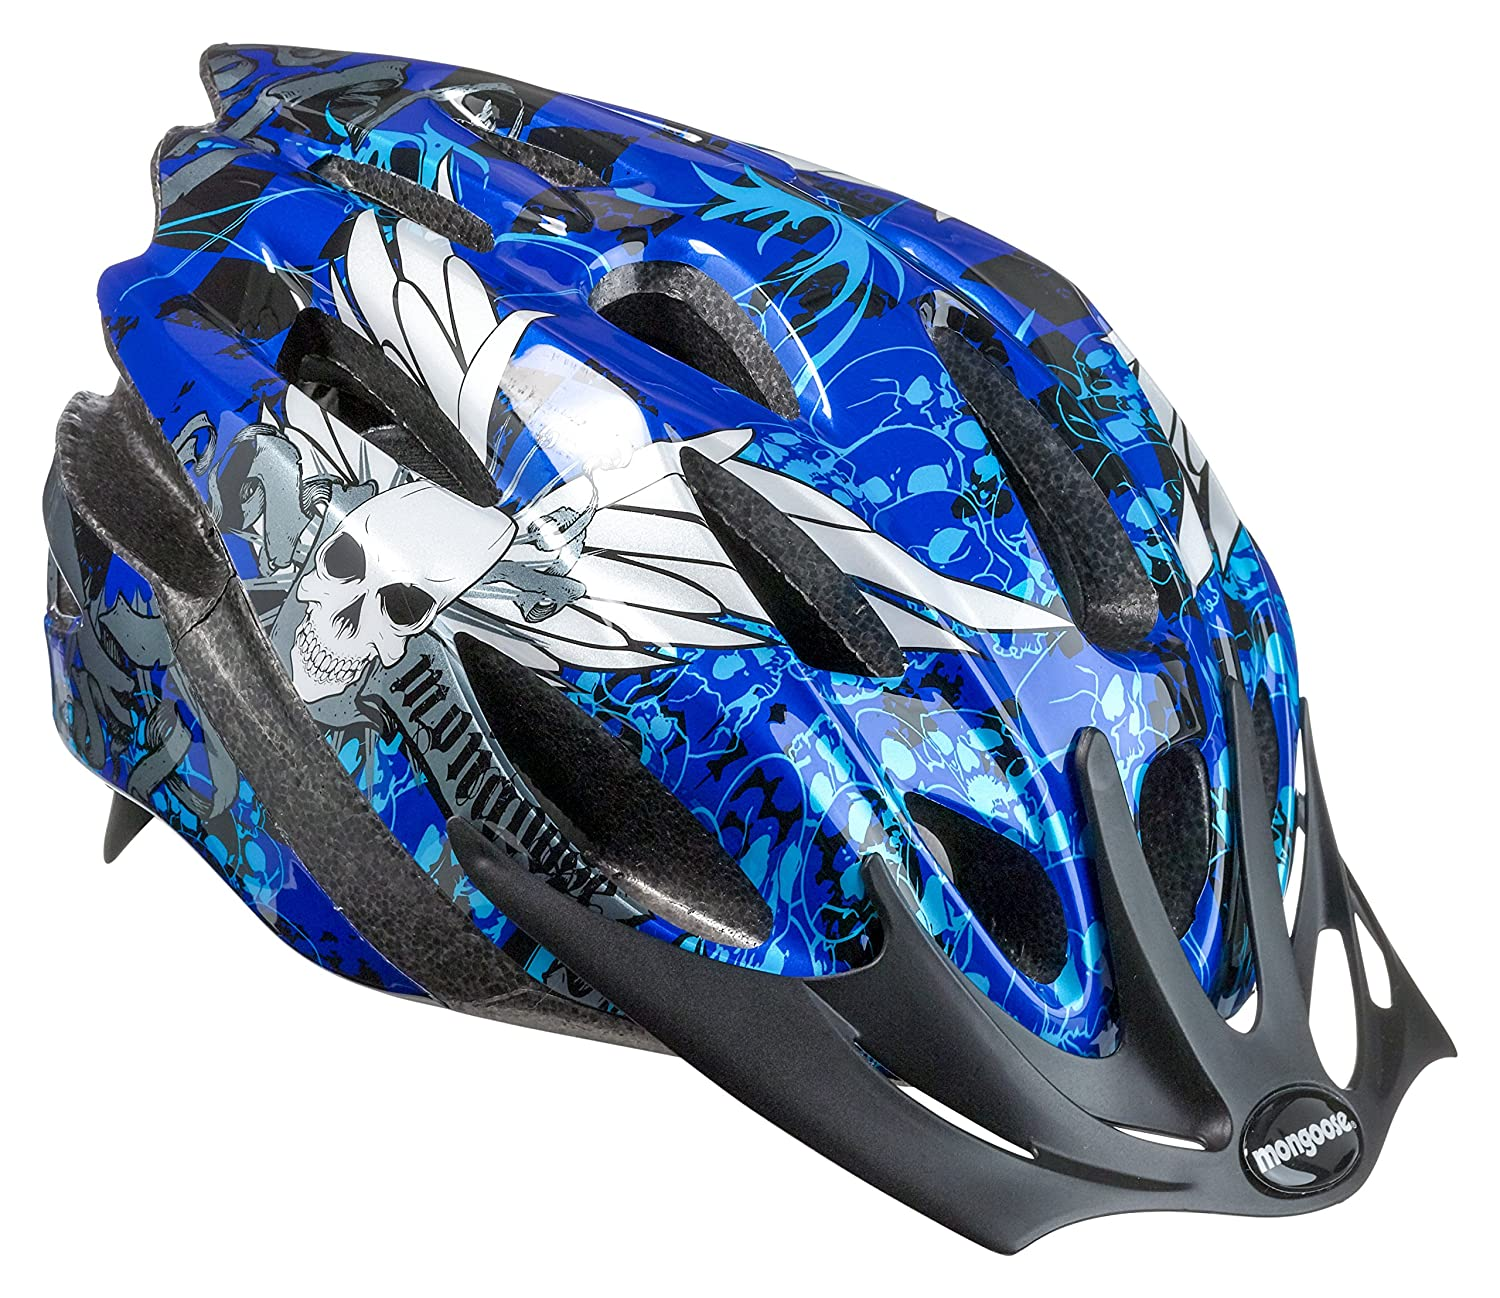 Mongoose Thrasher Lightweight Microshell Helmet Featuring Dial-Fit Adjustability, for Youth and Children